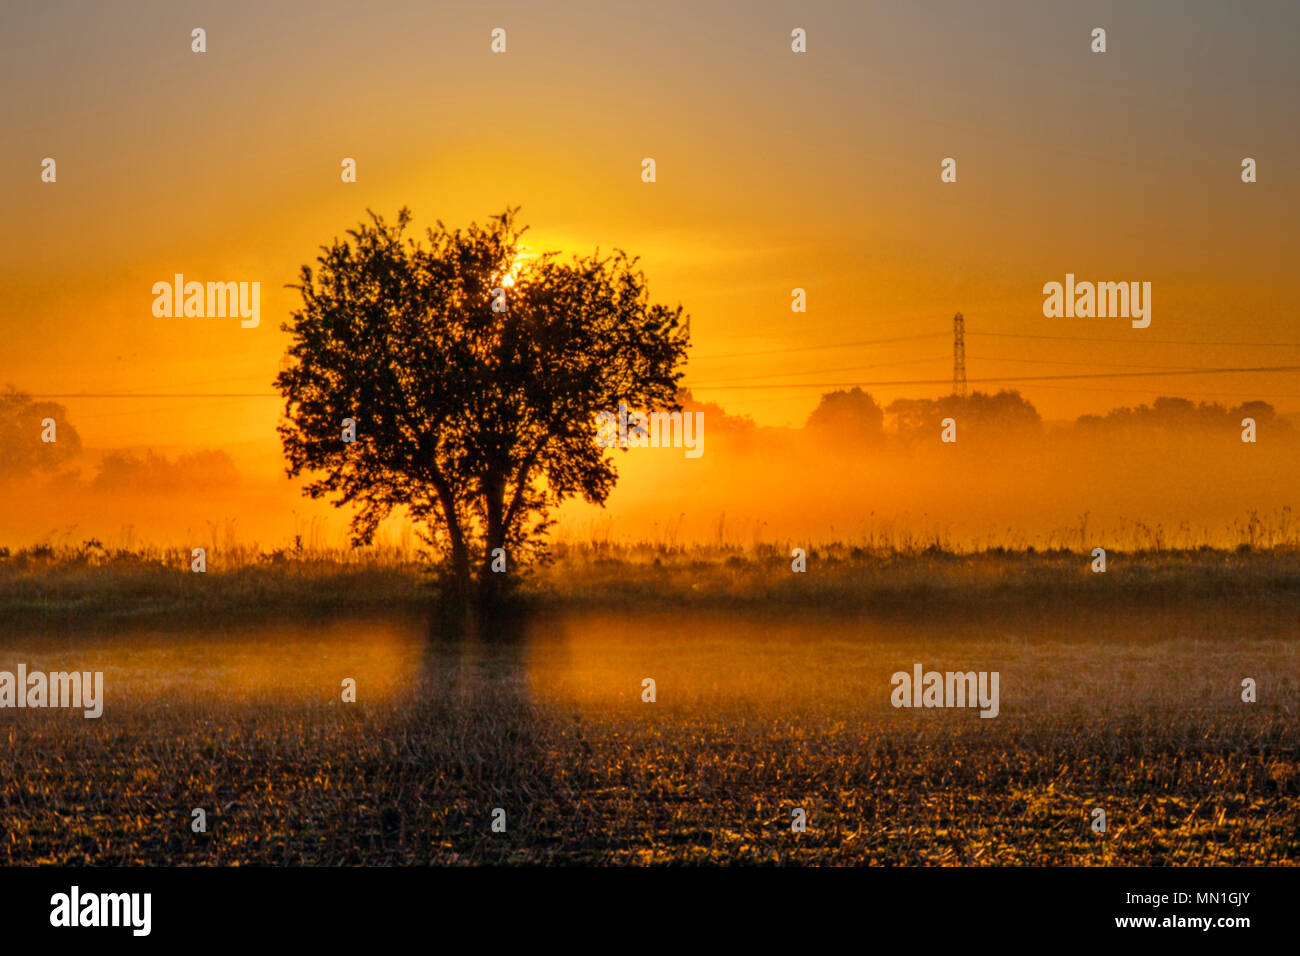 Rufford, Lancashire, UK. 14/05/2018. UK Weather.  Cold, atmospheric, misty morning after overnight frosts, at the start of the day in rural agricultural countryside. A ground frost after a clear night brings risk of damage to newly planted crops. Credit: MediaWorldImages/AlamyLiveNews. - Stock Image